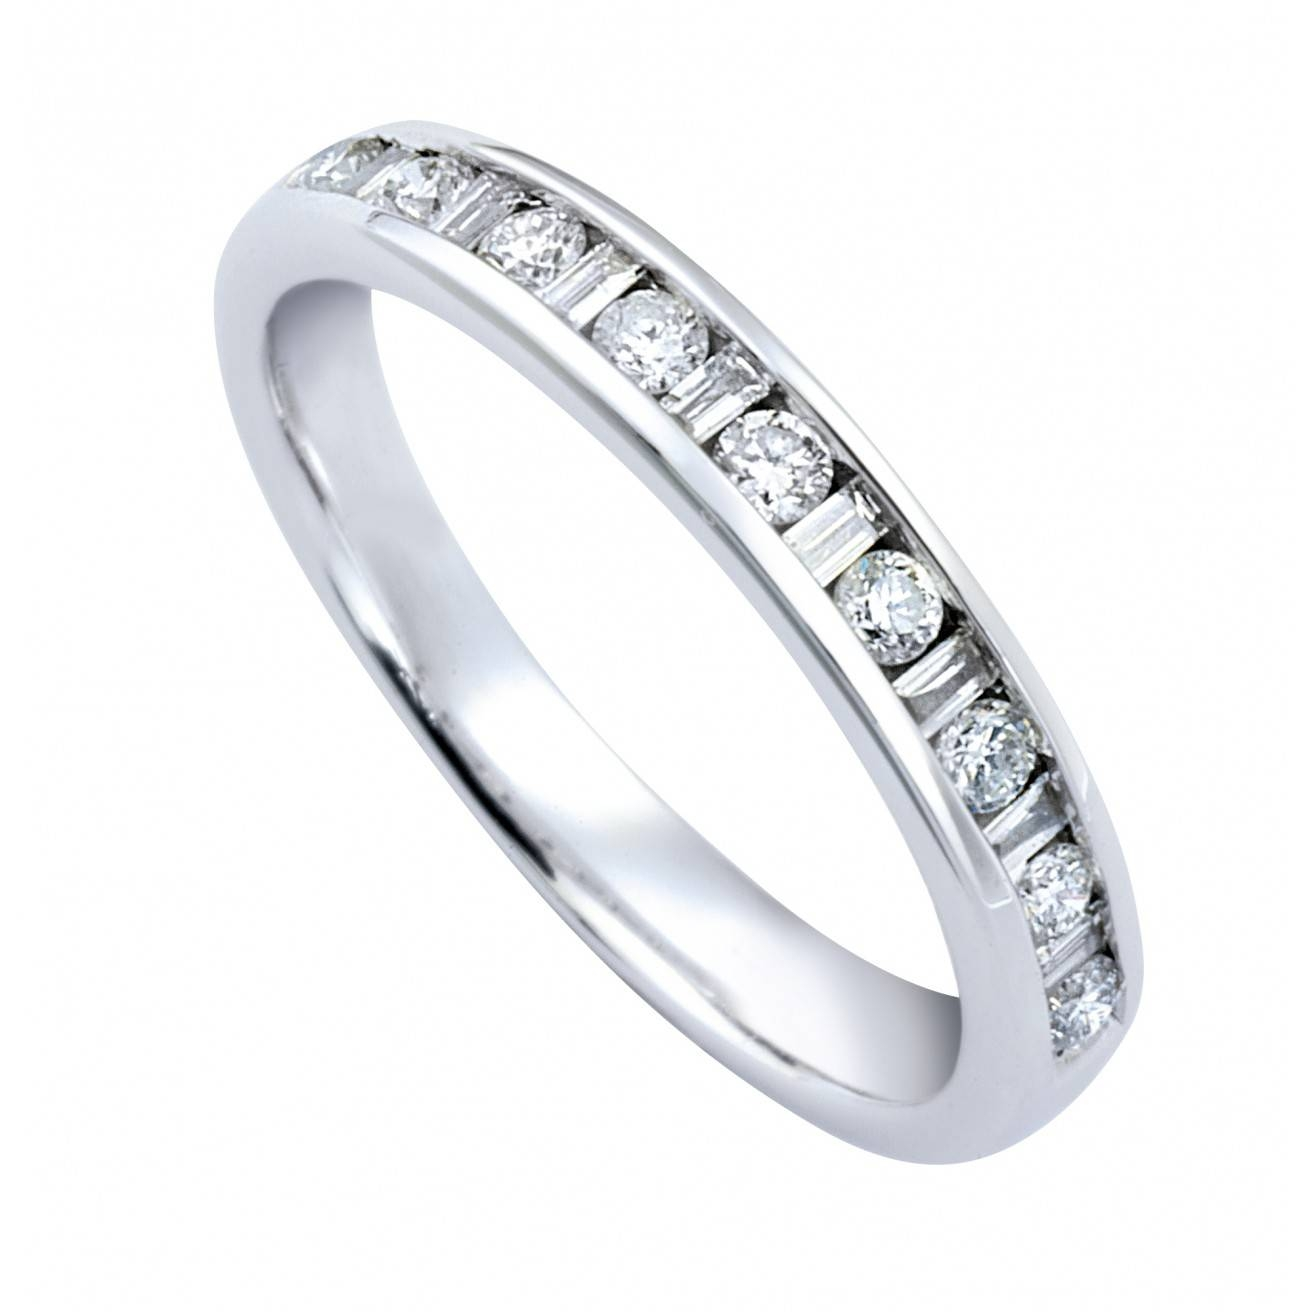 Buy A Diamond Wedding Ring Online – Fraser Hart Throughout Diamond Band Wedding Rings (View 7 of 15)